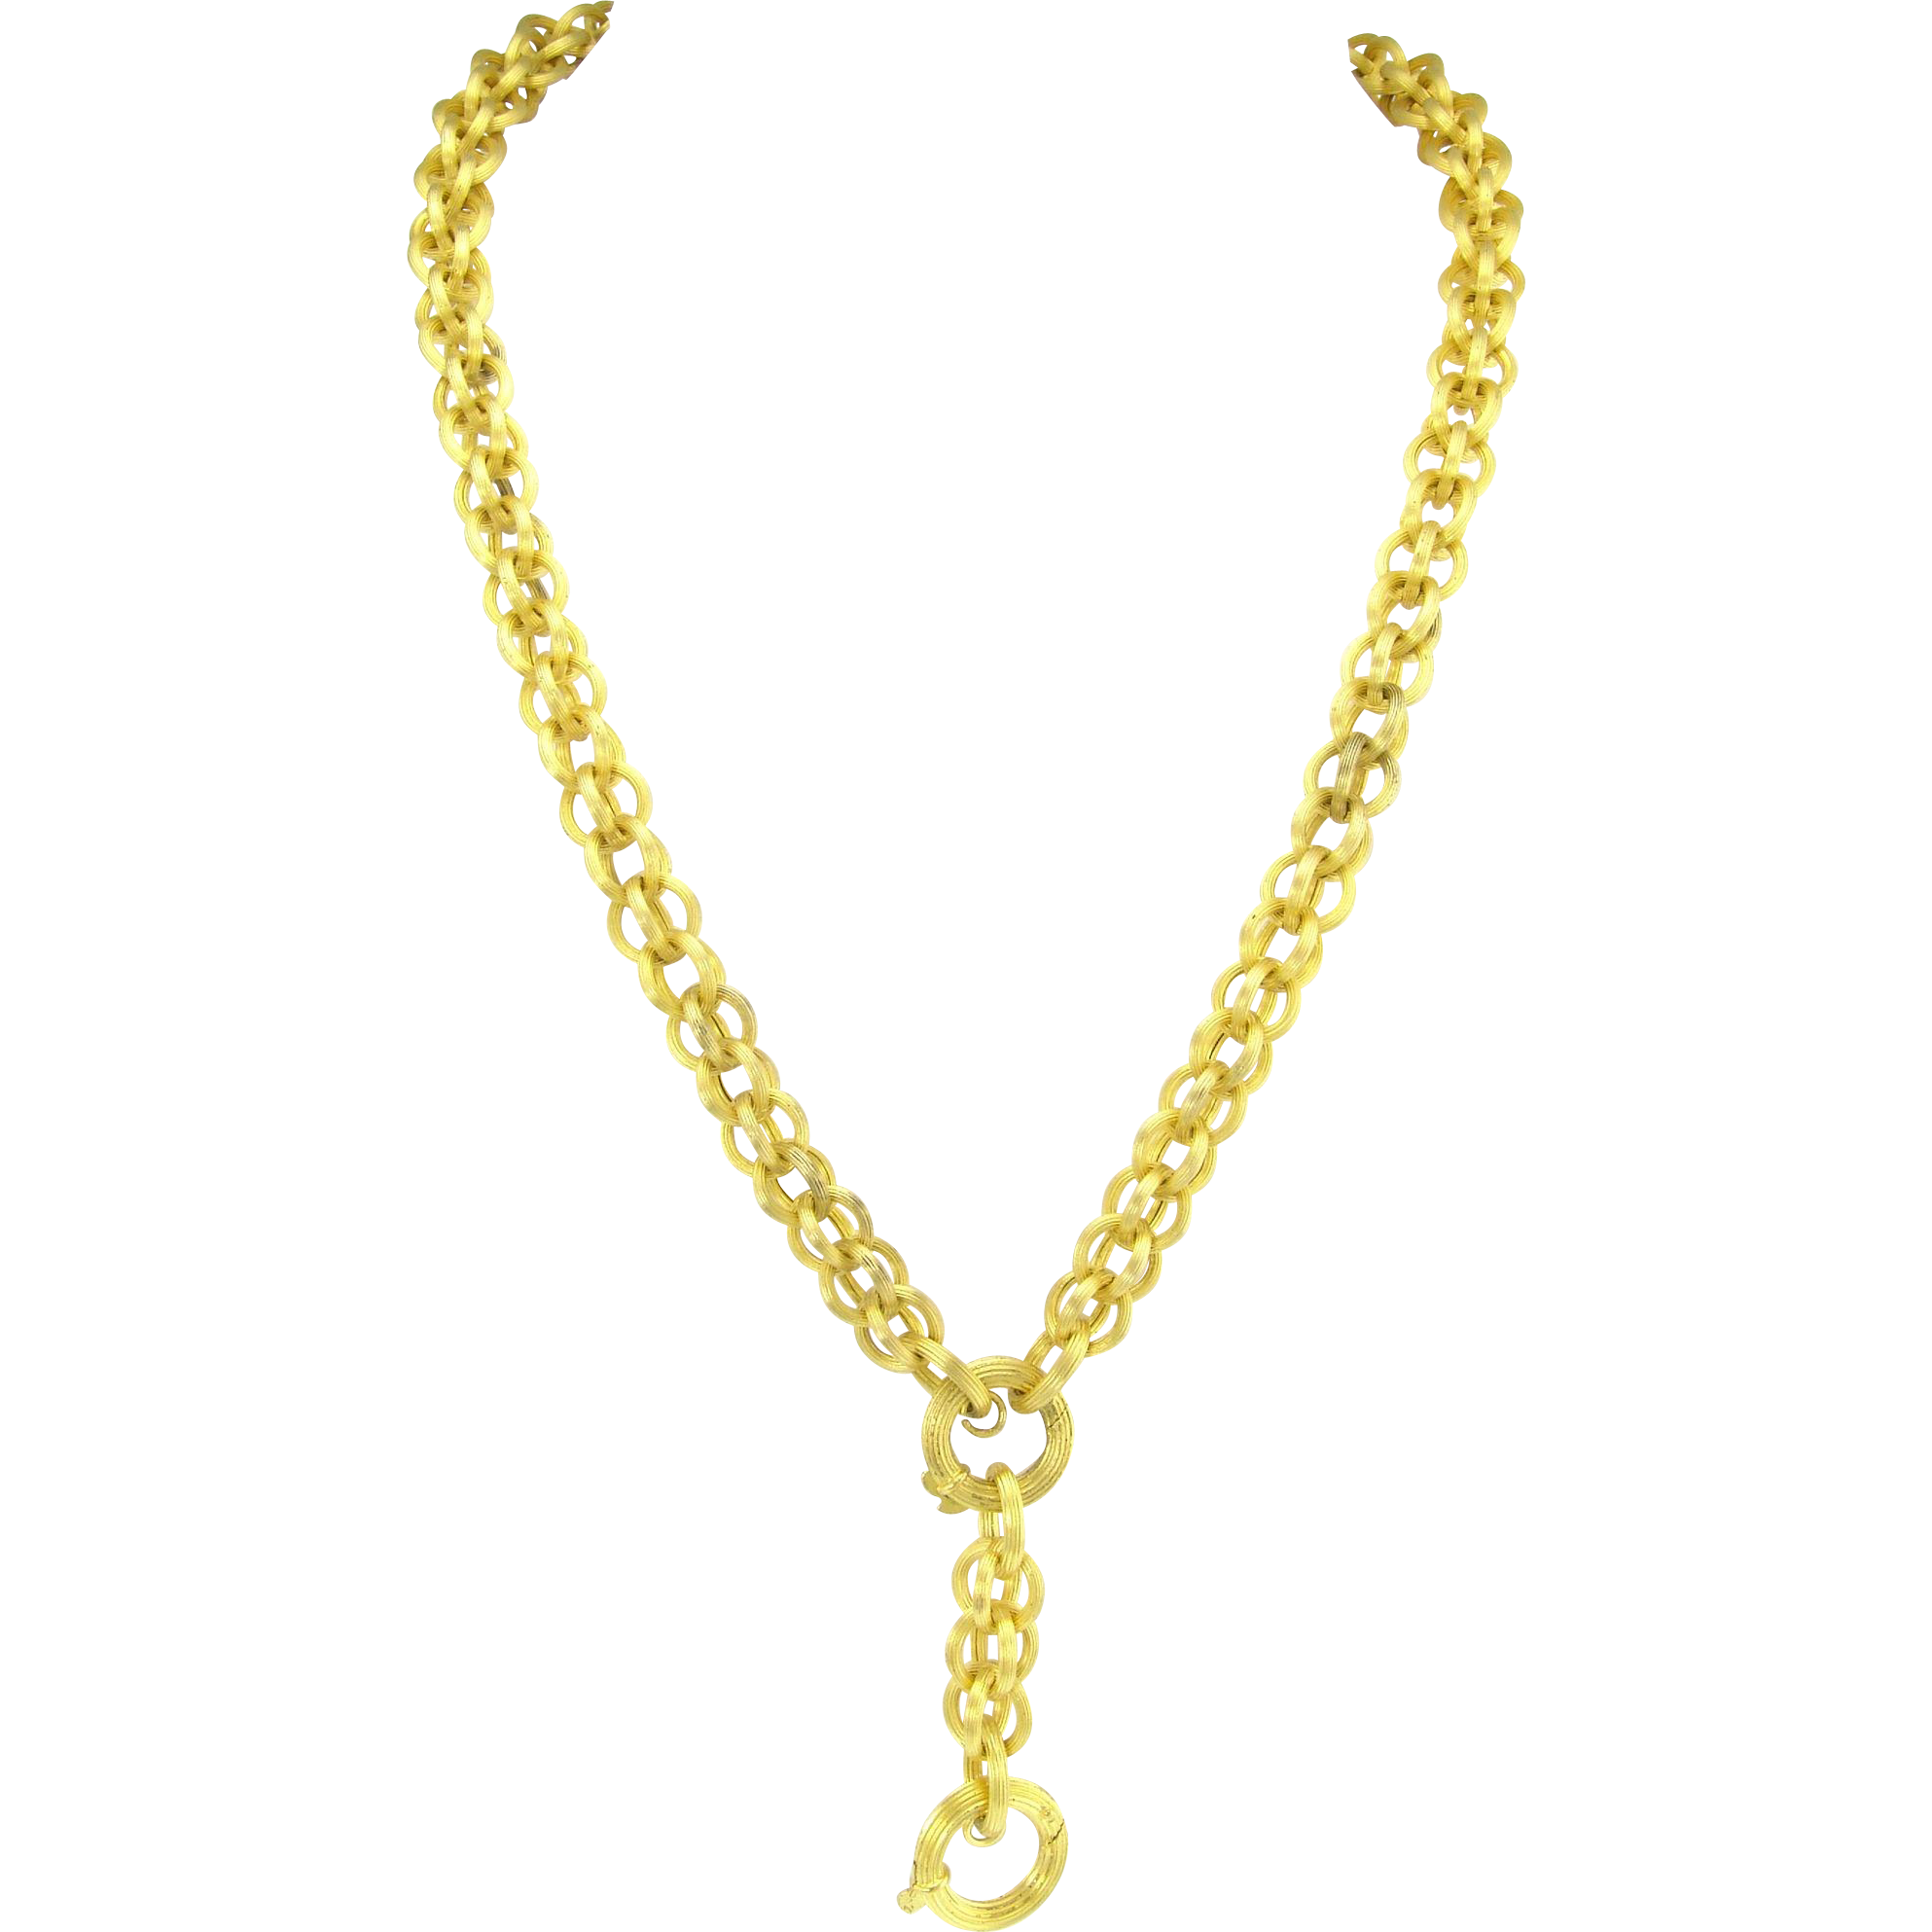 Jewelry clipart gold chain, Picture #1444693 jewelry clipart.